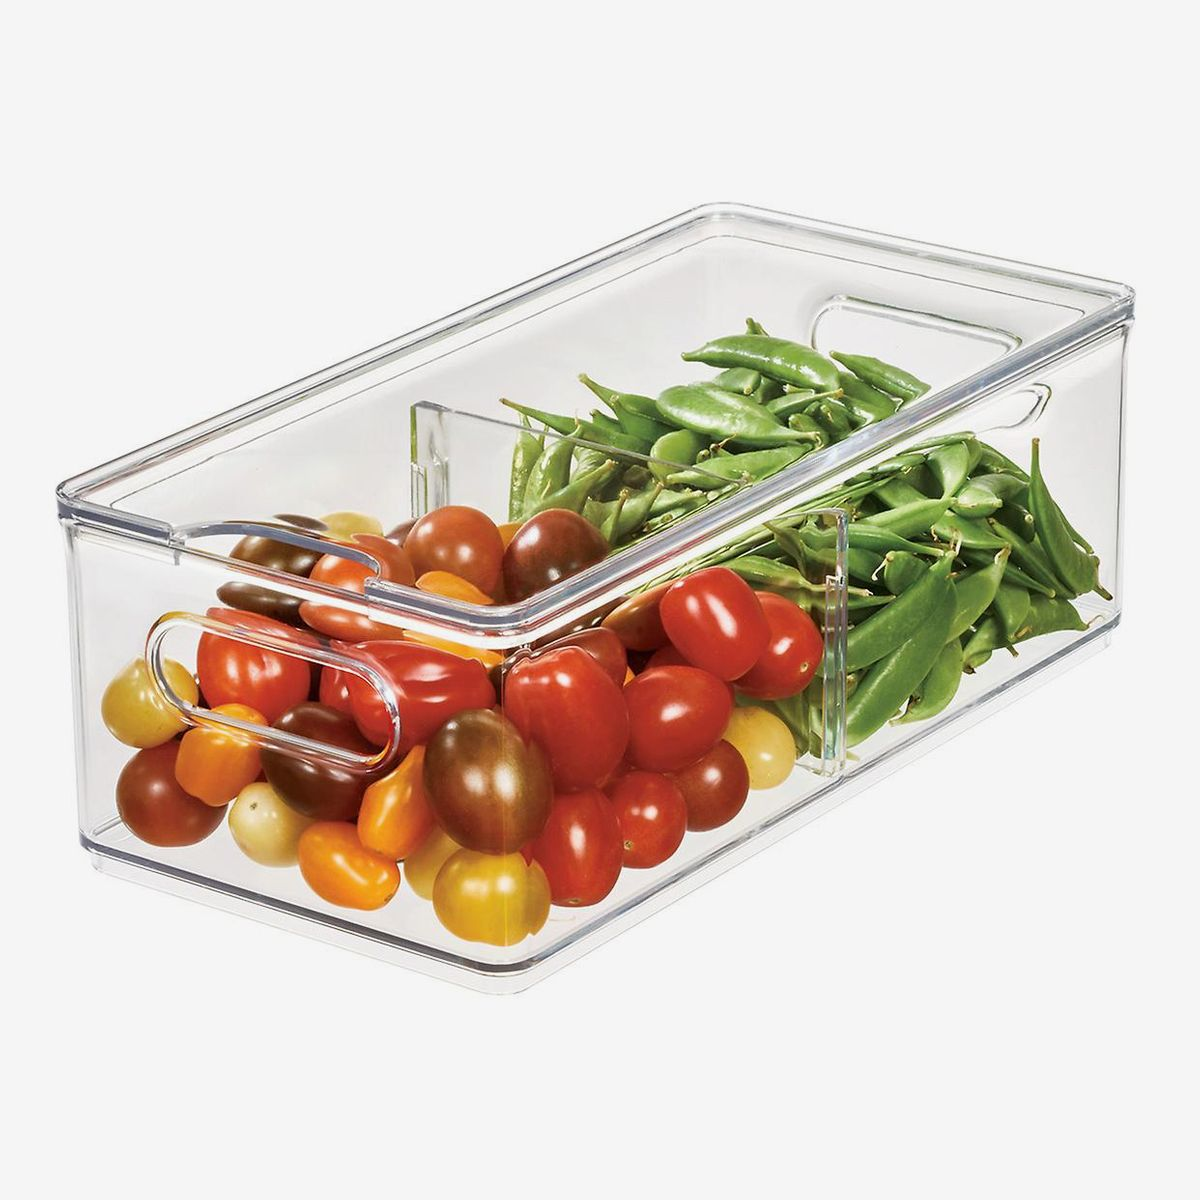 Clear rectangular bin holding fruits and veggies.